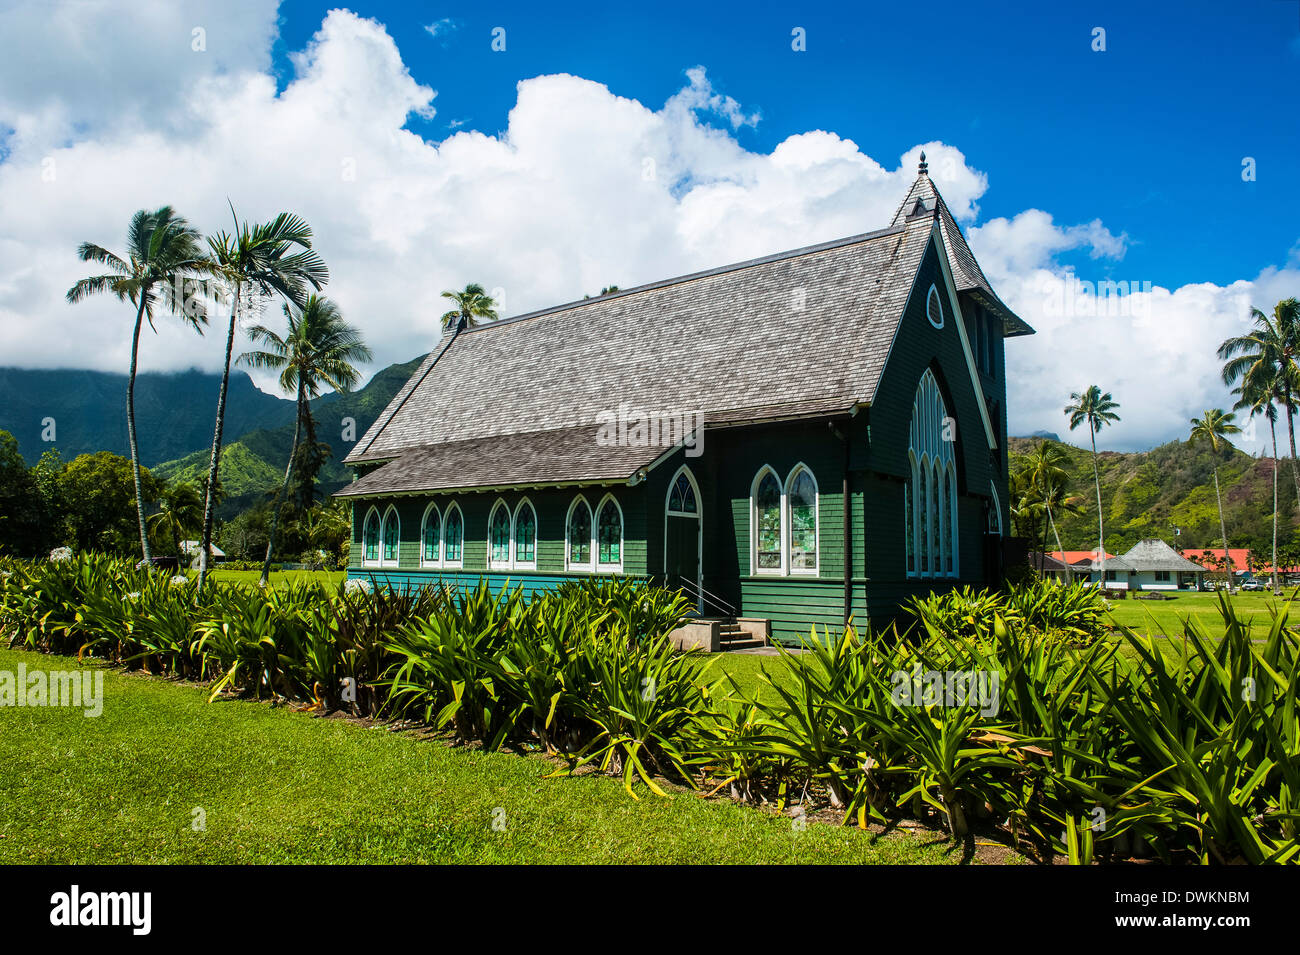 Wai'oli Hui'ia Church in Hanalai on the island of Kauai, Hawaii, United States of America, Pacific - Stock Image